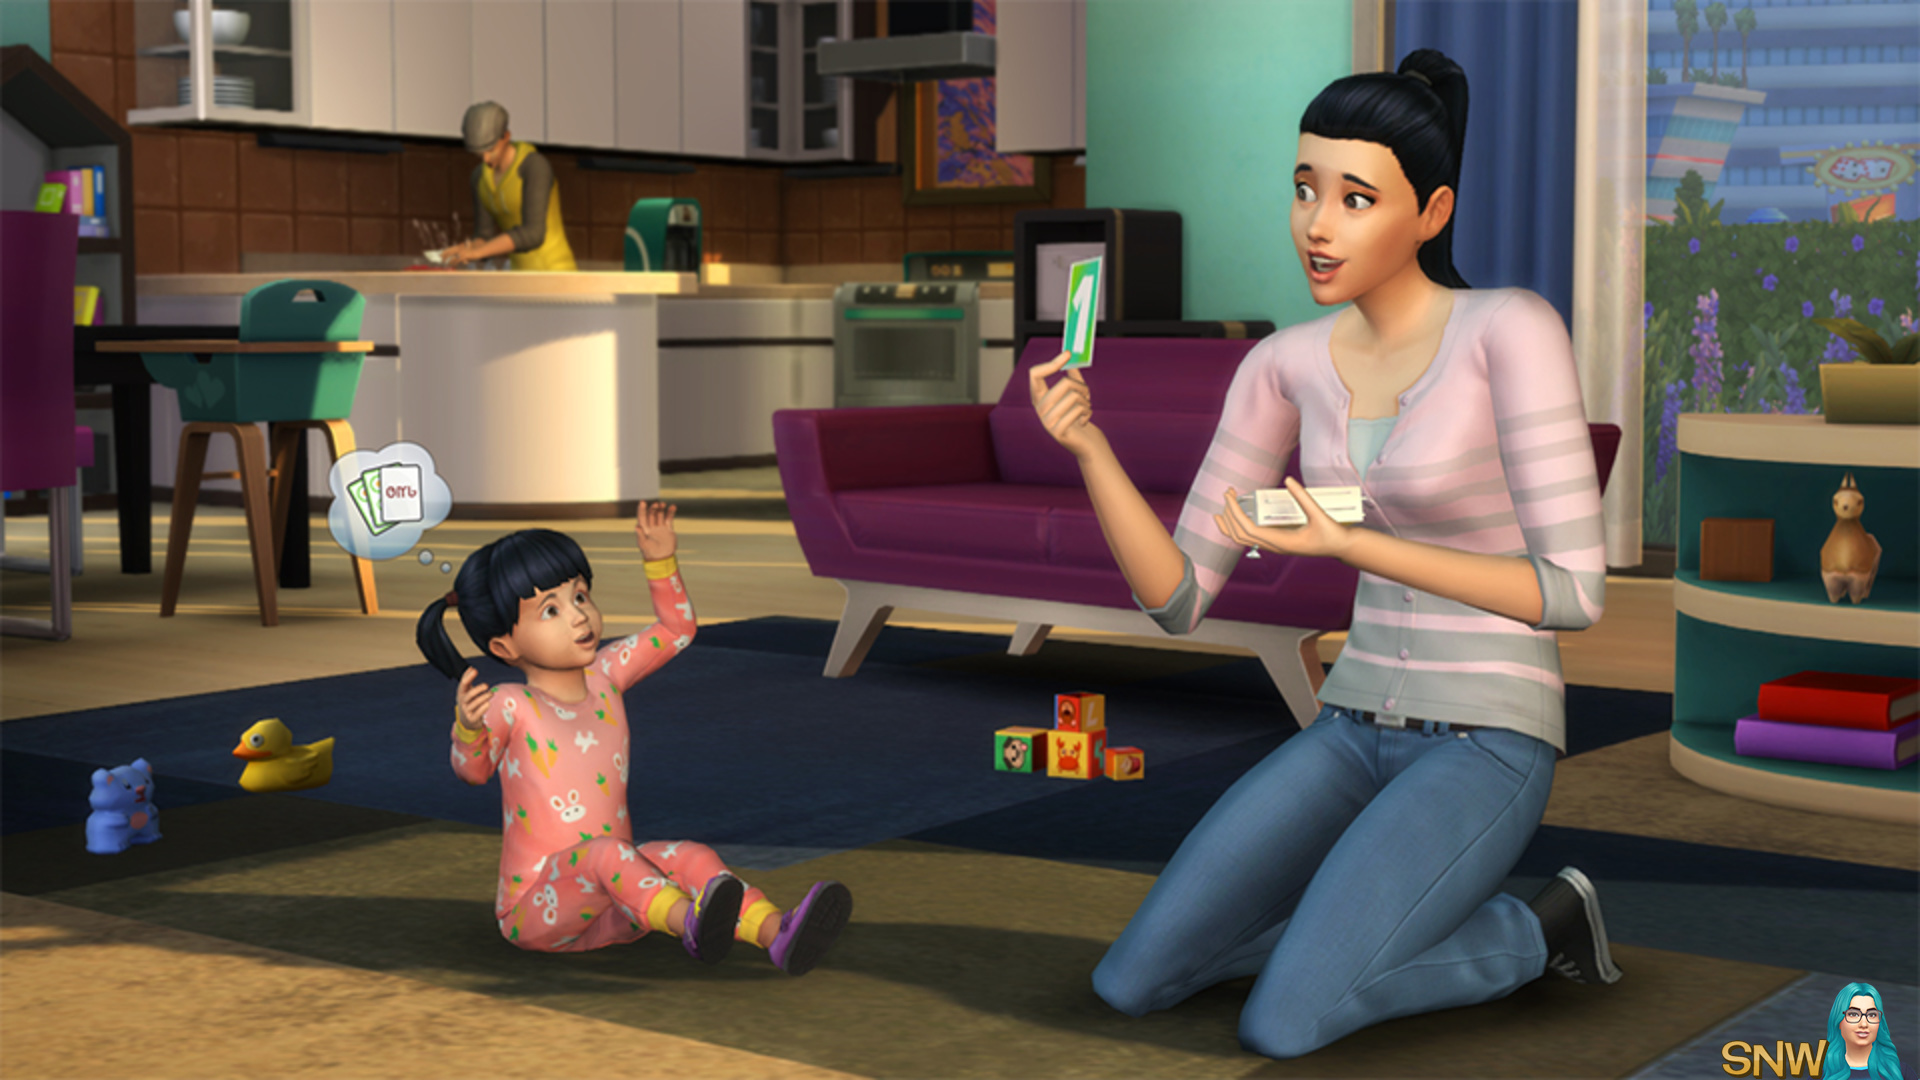 The Sims 4: Toddlers